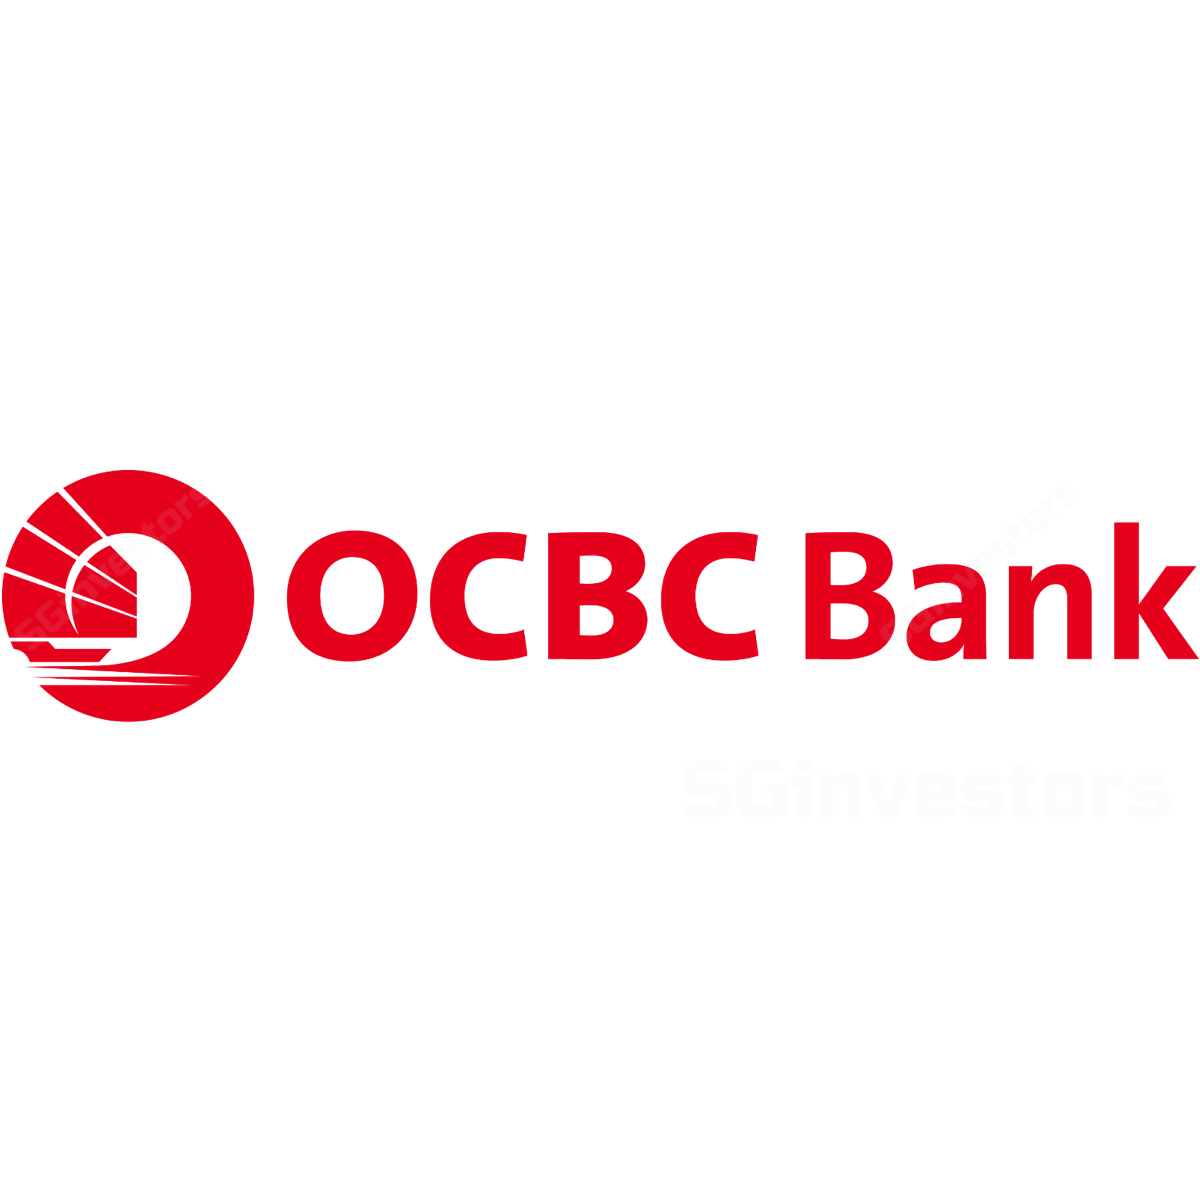 Oversea-Chinese Banking Corp - Phillip Securities 2017-10-27: Powering Ahead Into 2018